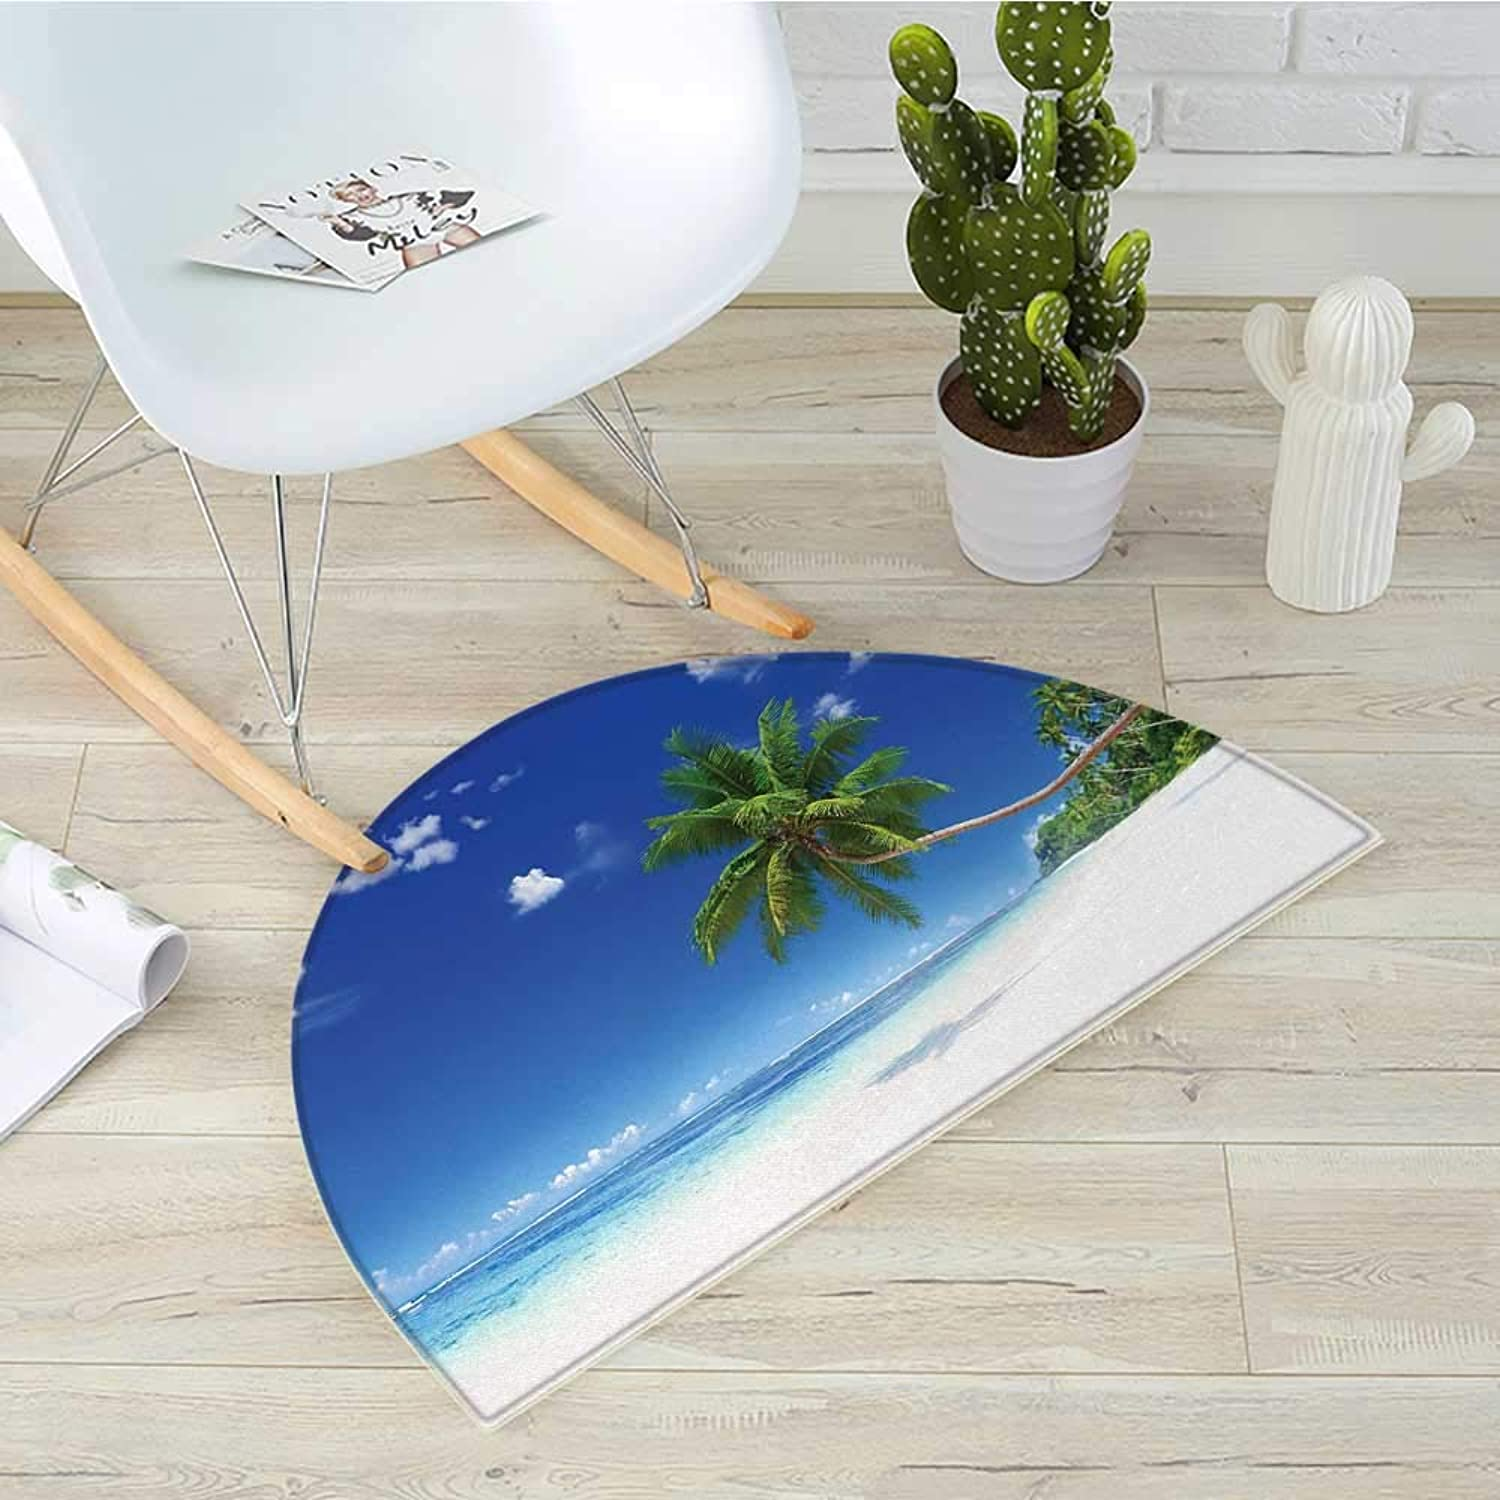 Ocean Semicircular CushionCoastline Seascape Lagoon with Palm Leaf and Clouds Freedom Holiday Idyllic Entry Door Mat H 39.3  xD 59  White bluee Green